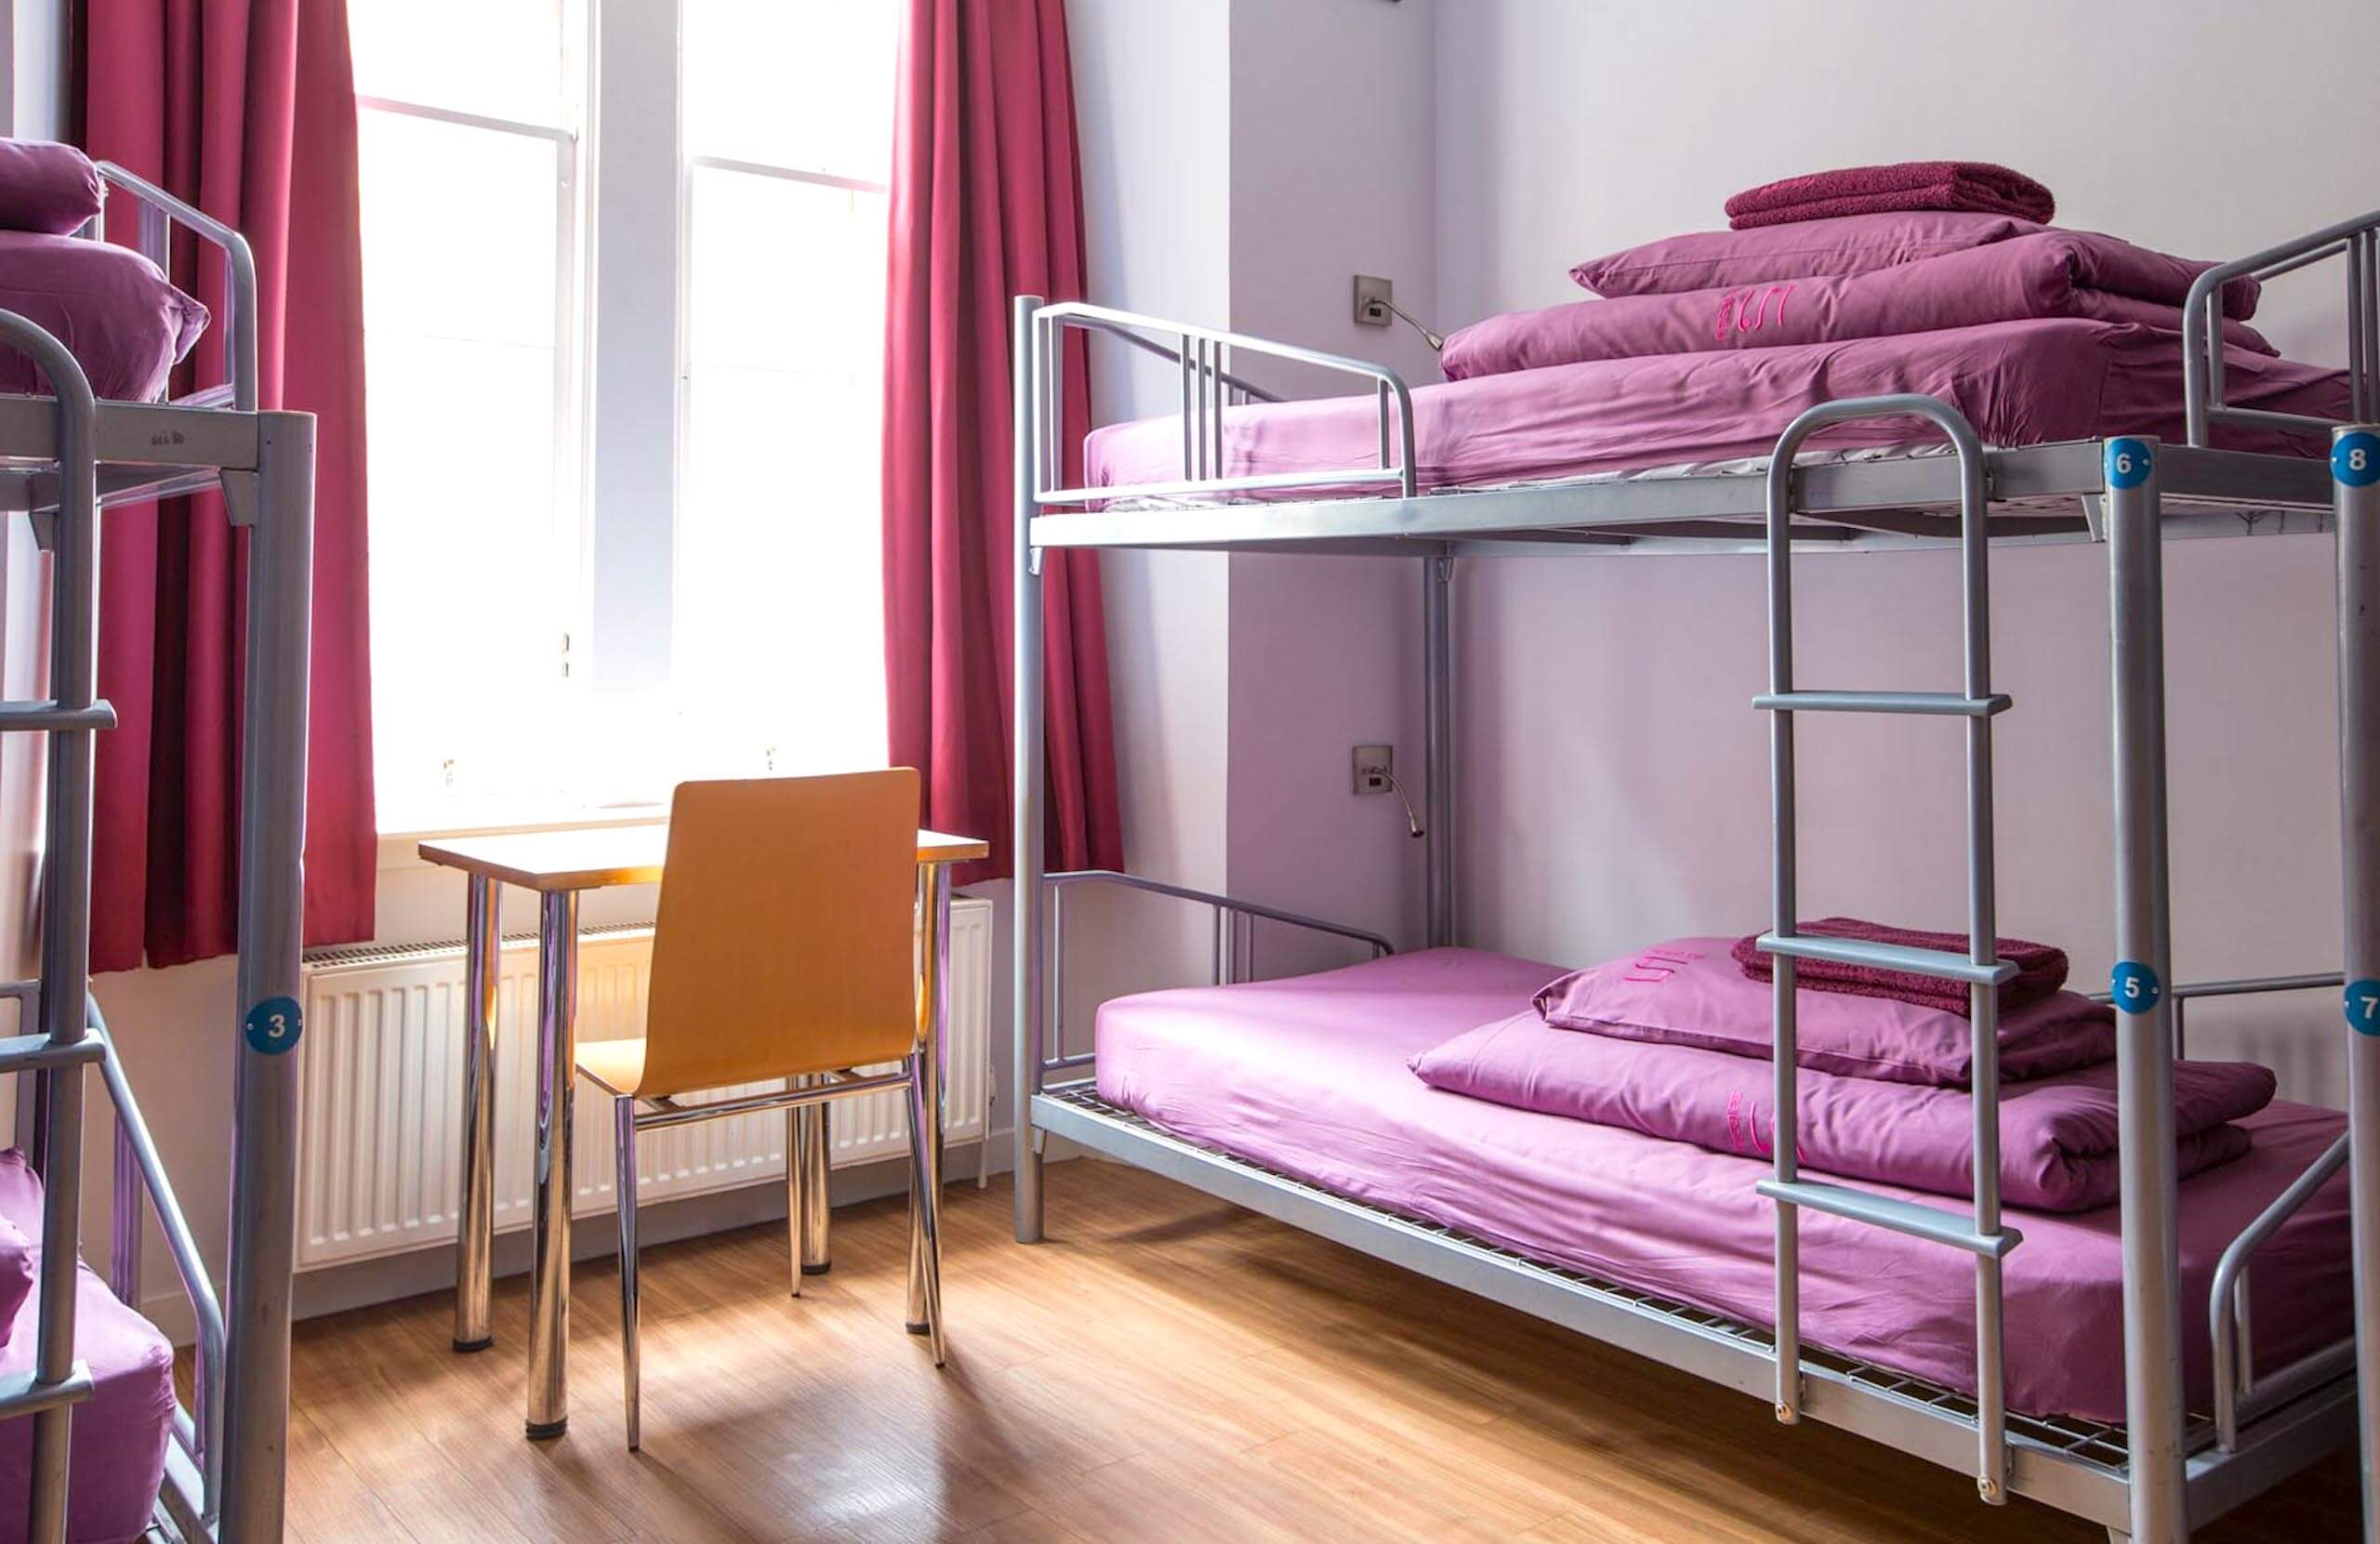 Safestay Edinburgh - Shared Dorm Room